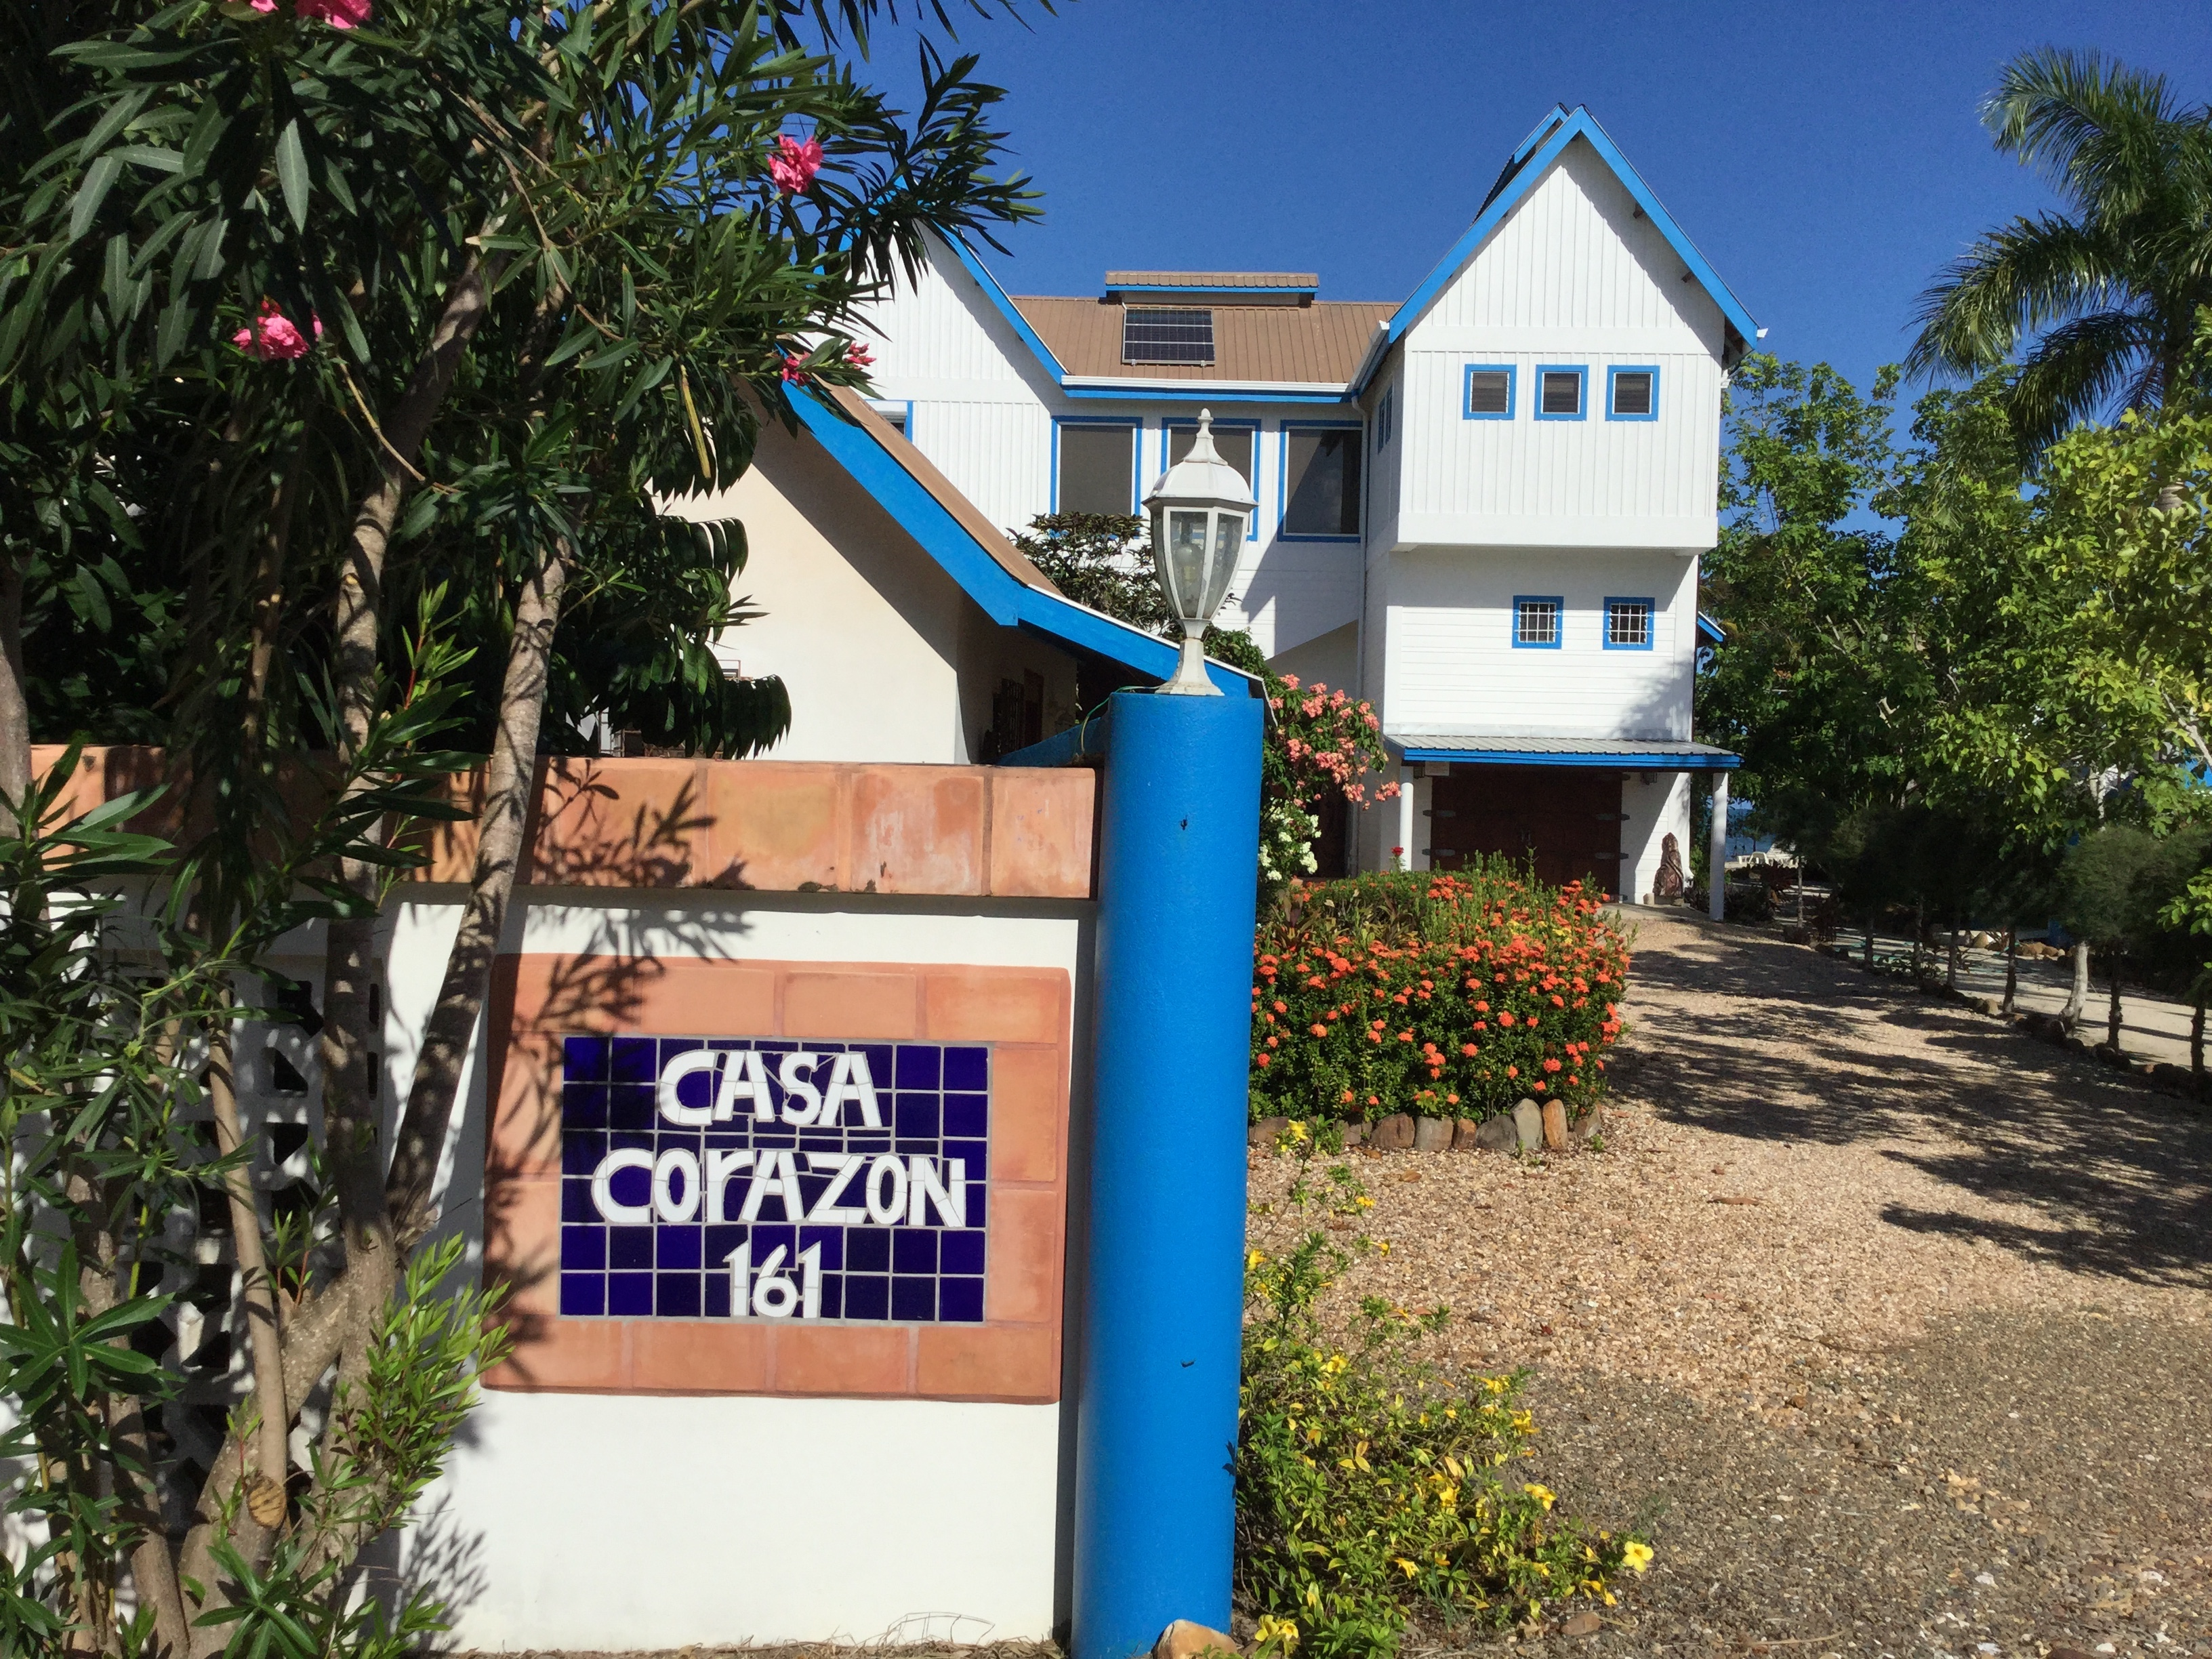 Welcome to Casa Corazon!